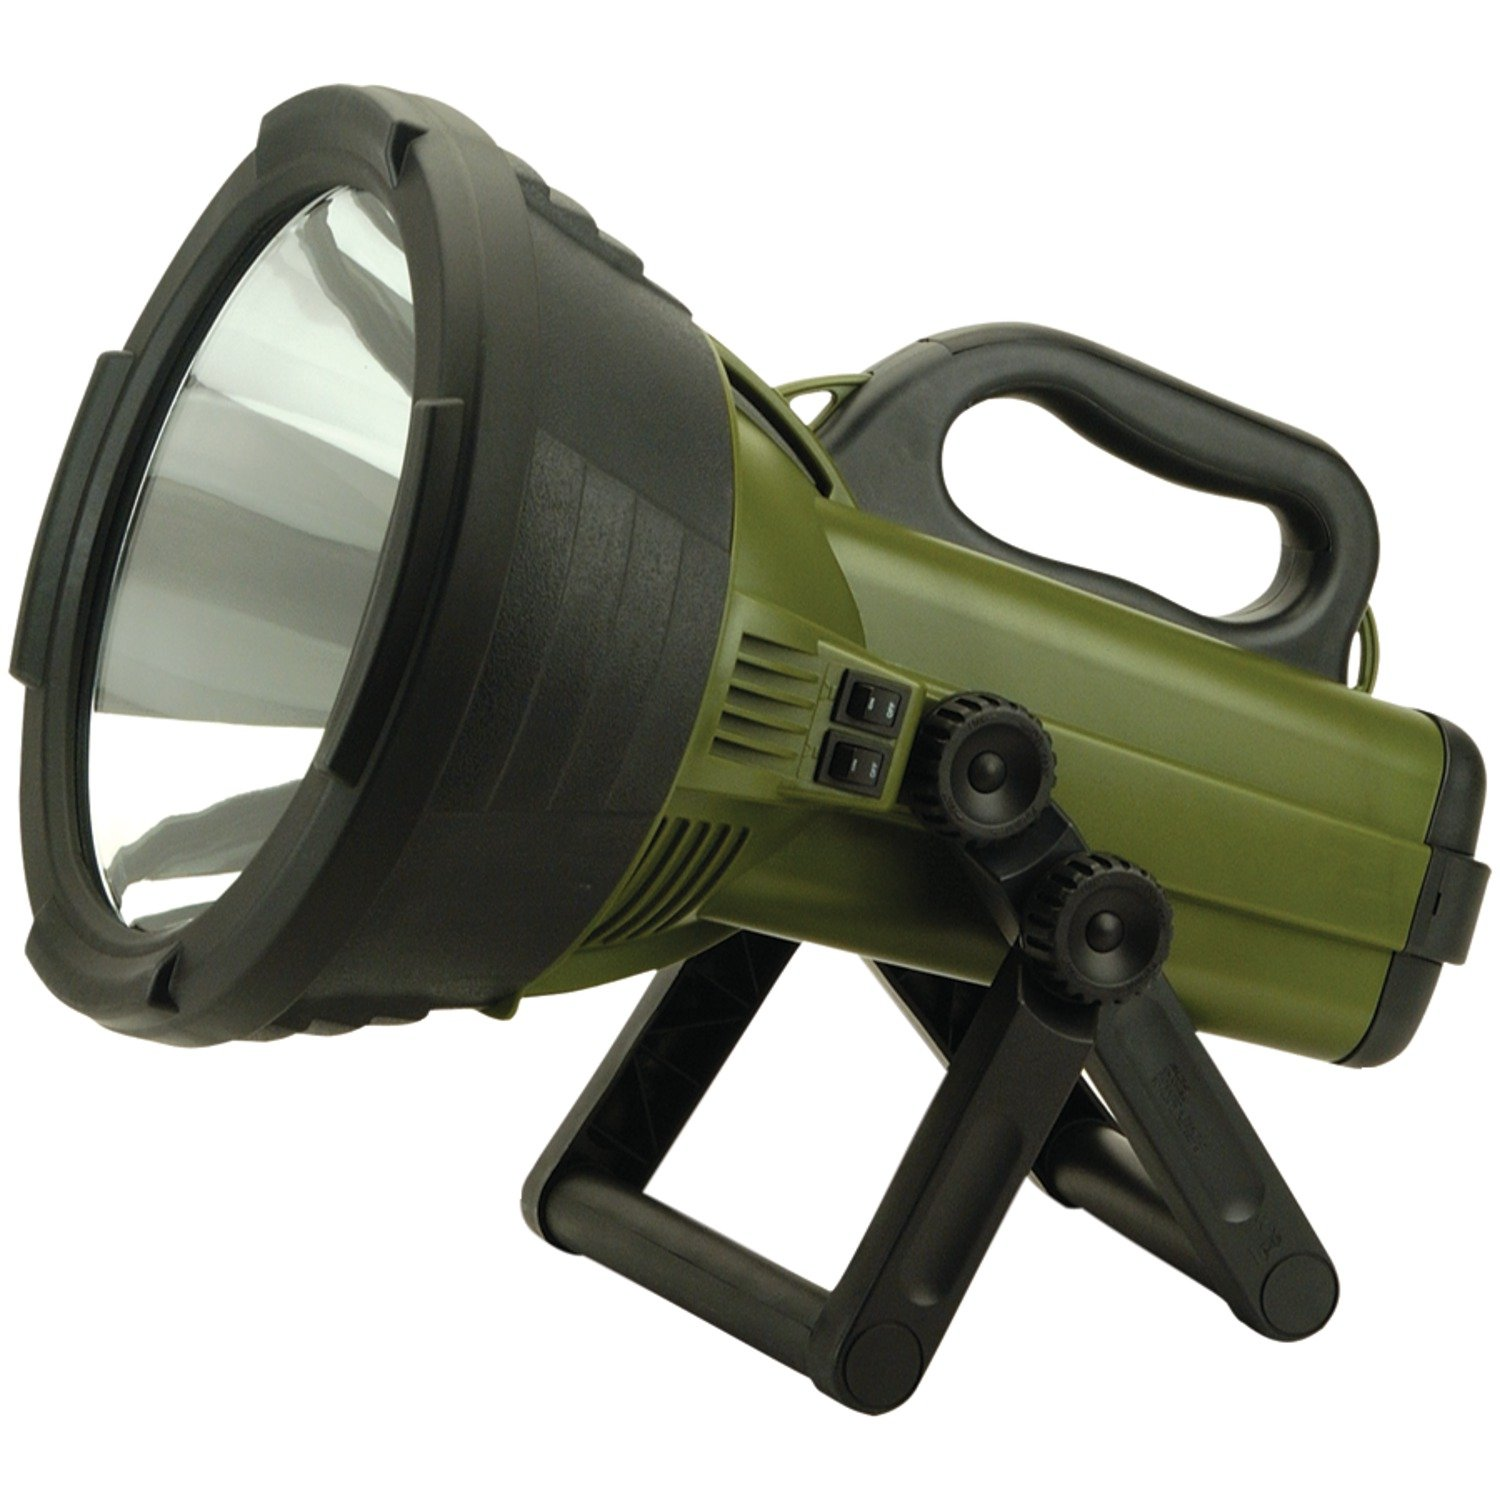 Led Spotlight Rechargeable: Cyclops18 Million Candle Power Rechargeable Spotlight